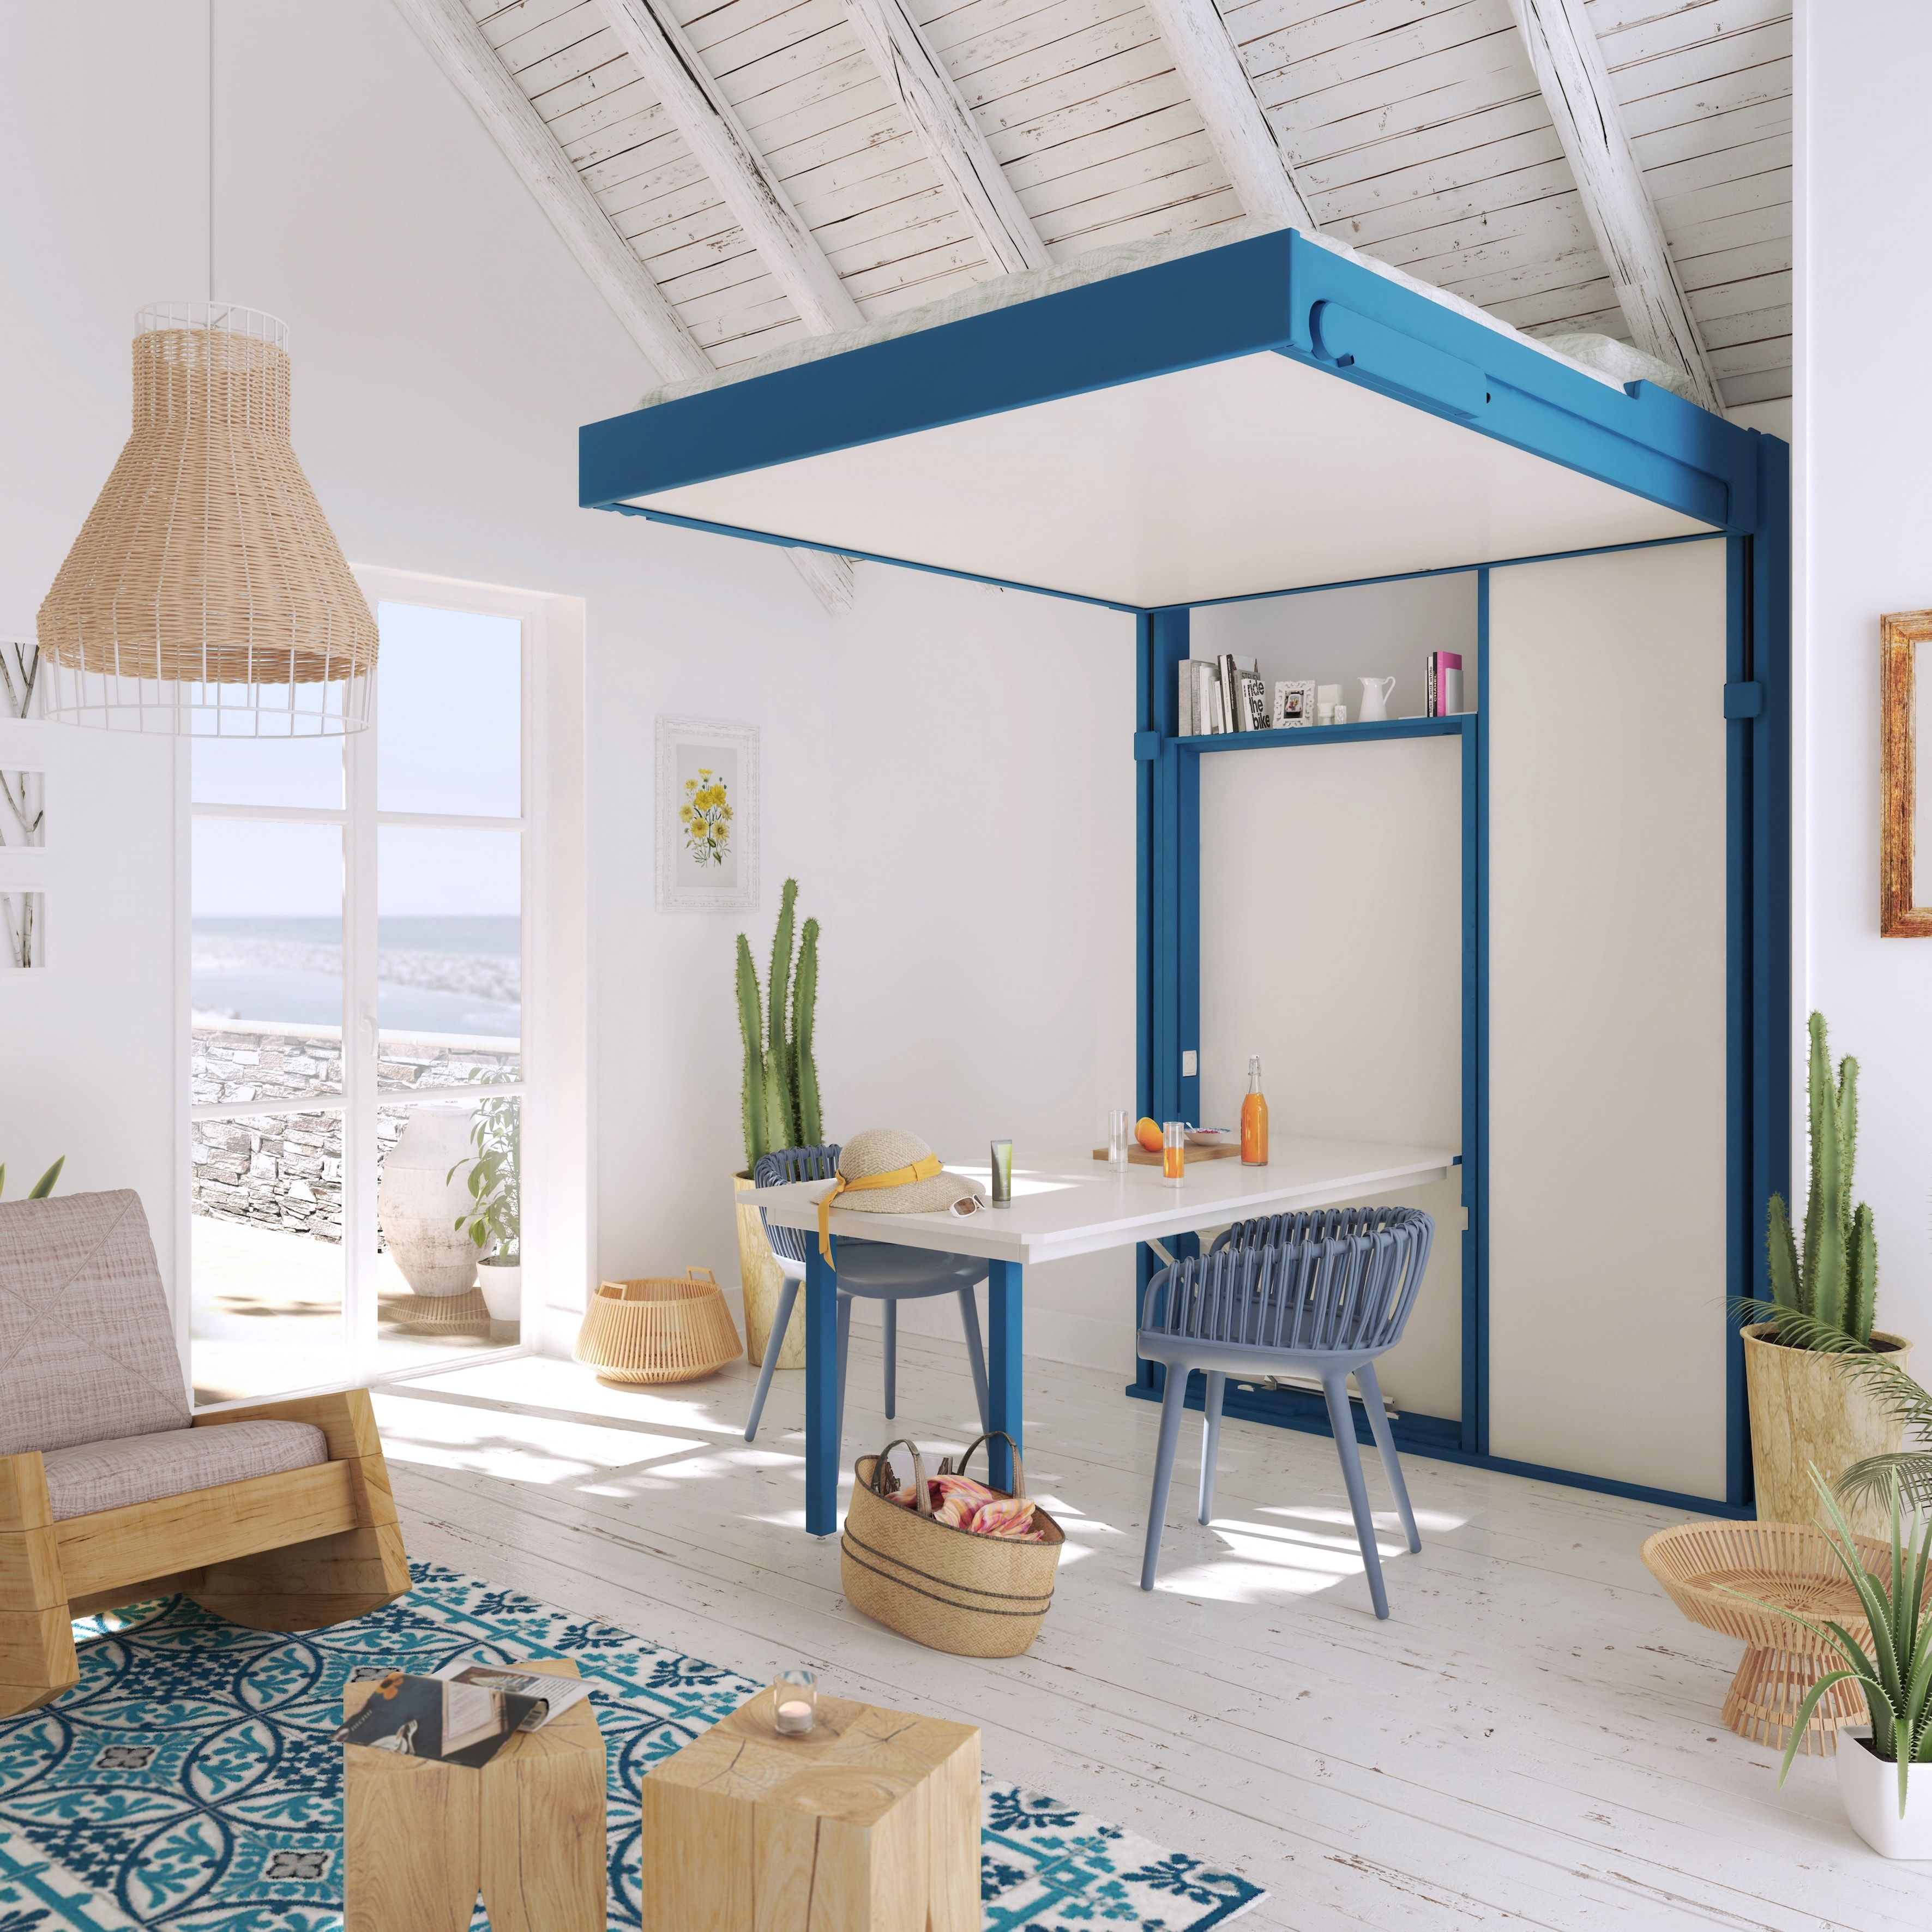 Espace Loggia Paris Pin By Kay Montgomery On Tiny House Bedroom Pinterest Tiny